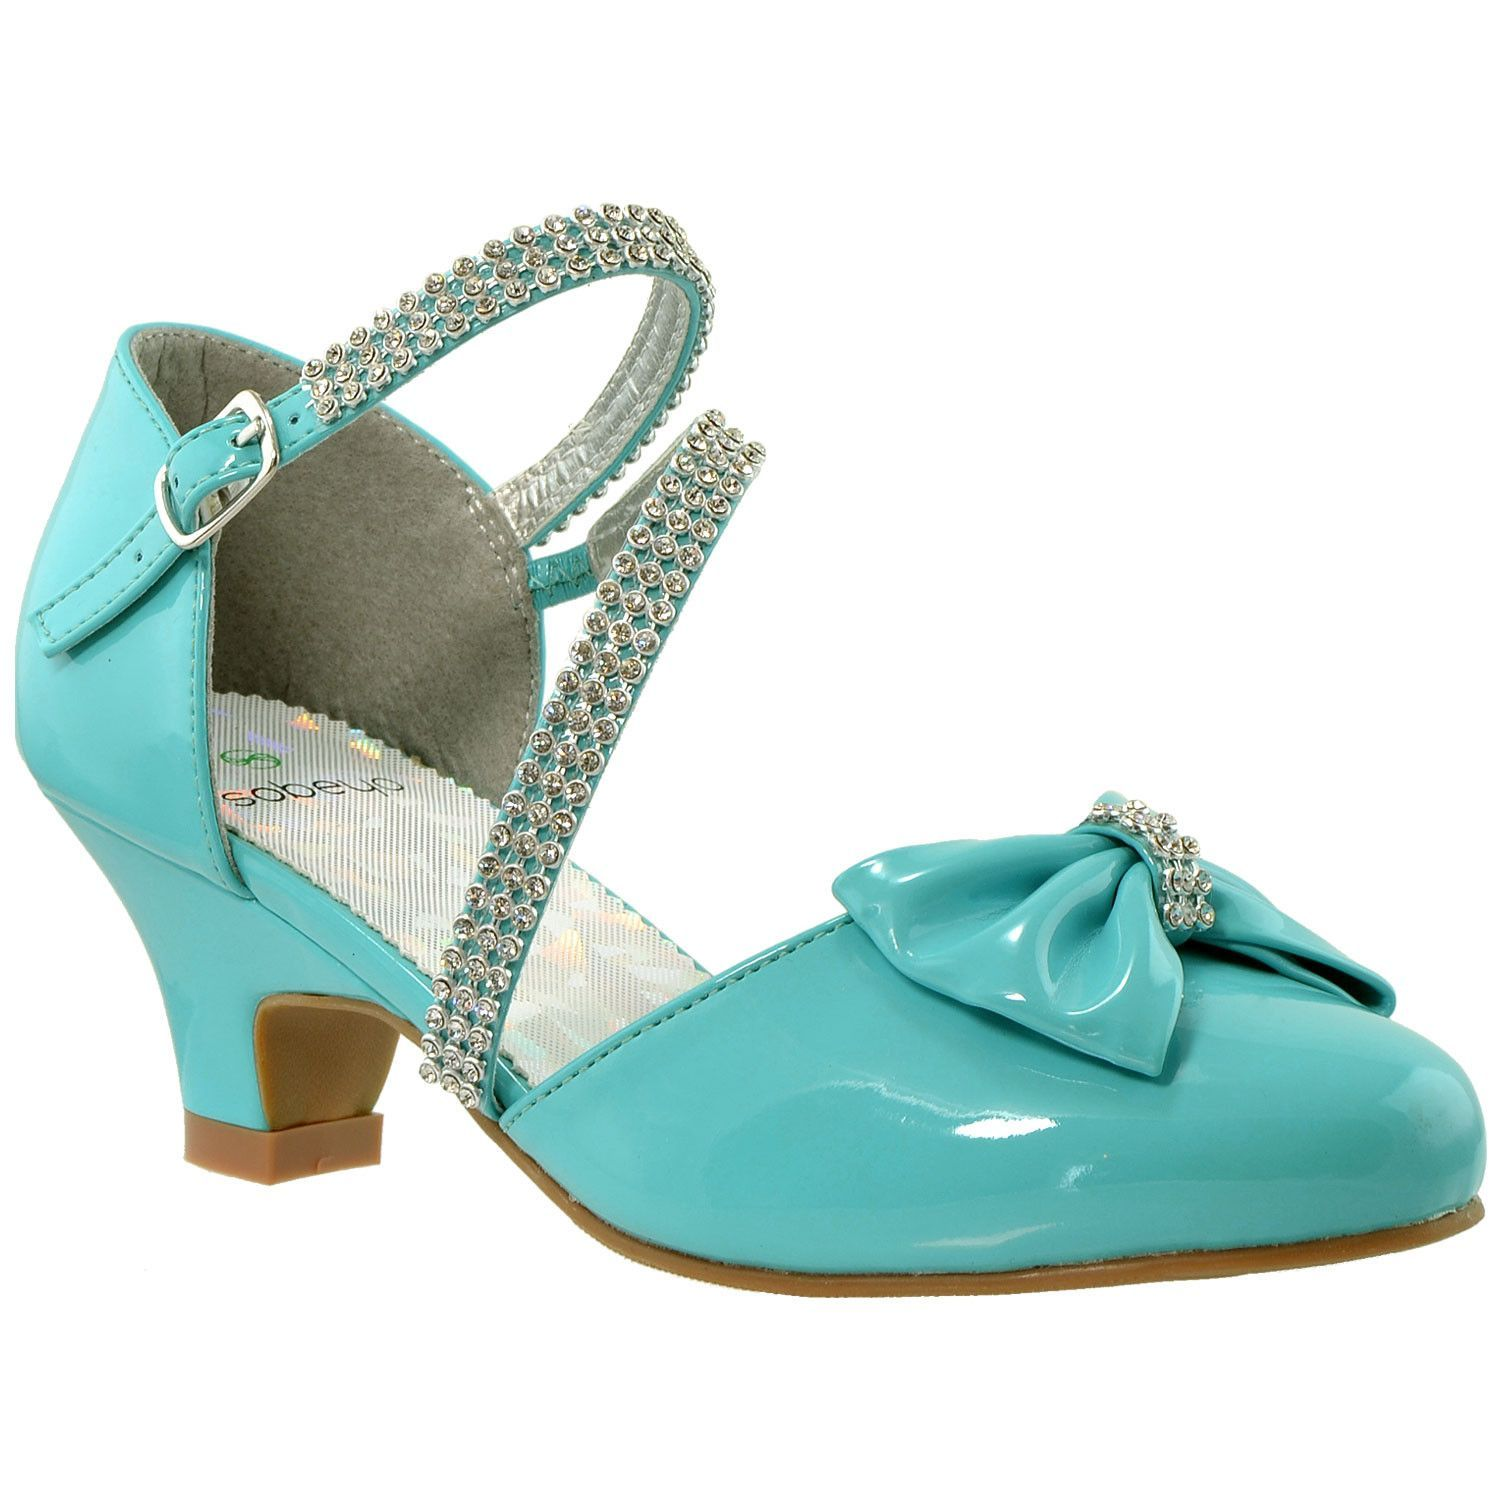 Girls Bow Accent Kitten Heel Pumps Turquoise Girls Dress Shoes Kitten Heel Sandals Kids Dress Shoes